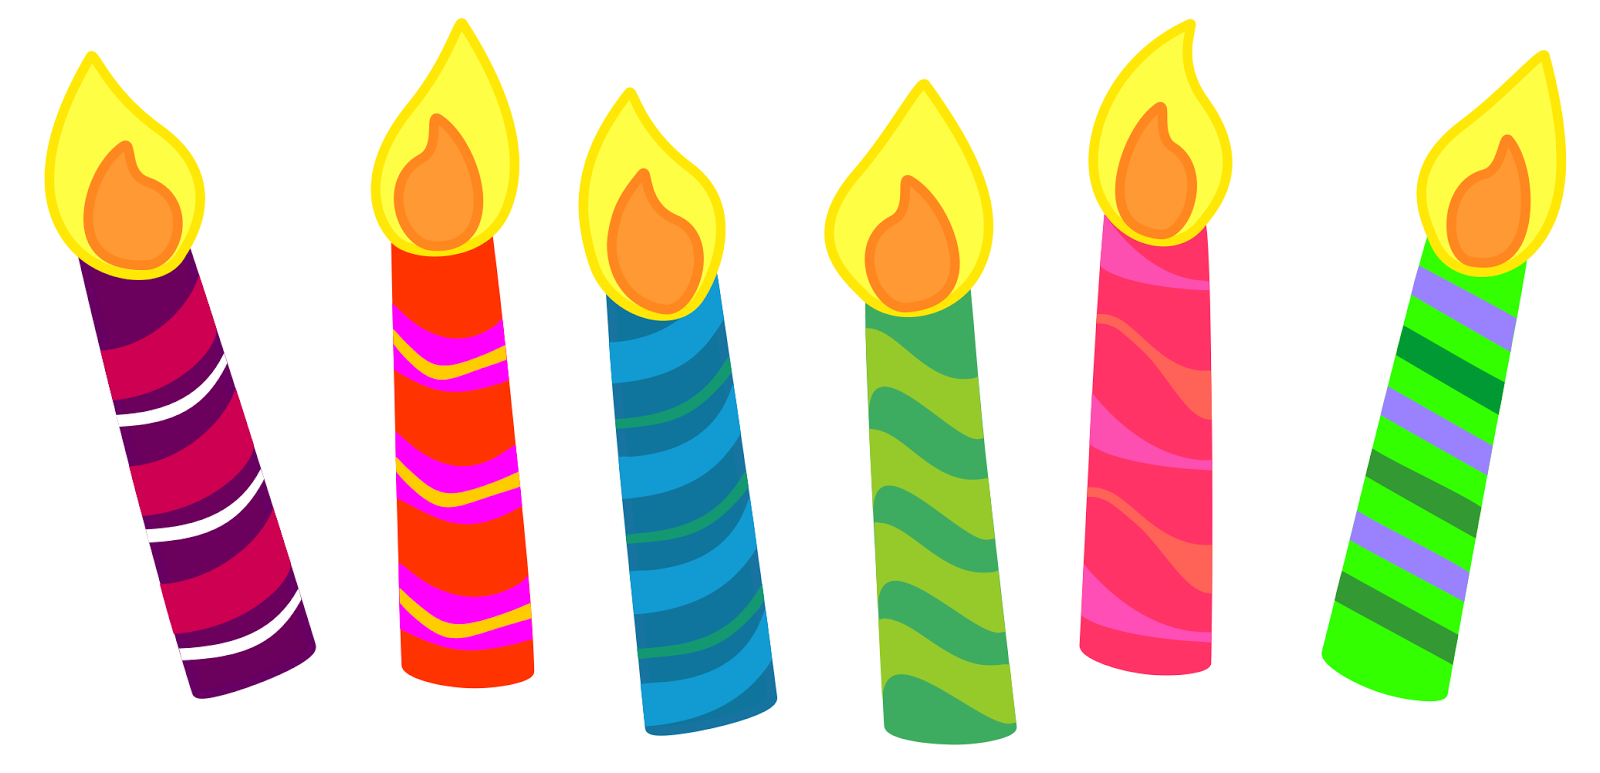 Free large images cards. Candles clipart